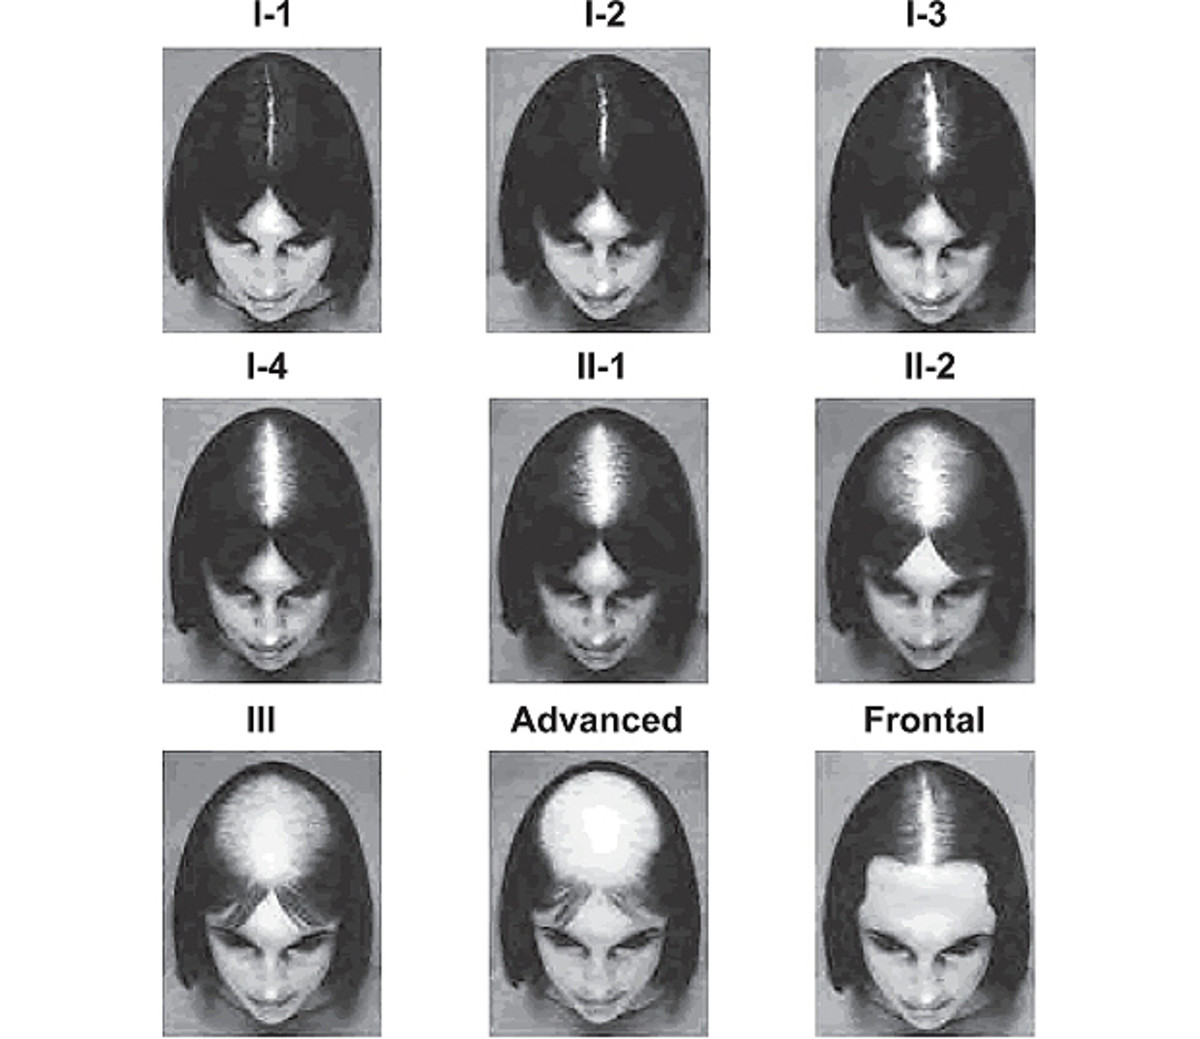 The Savin Scale of female hereditary hair loss (via the American Hair Loss Association).